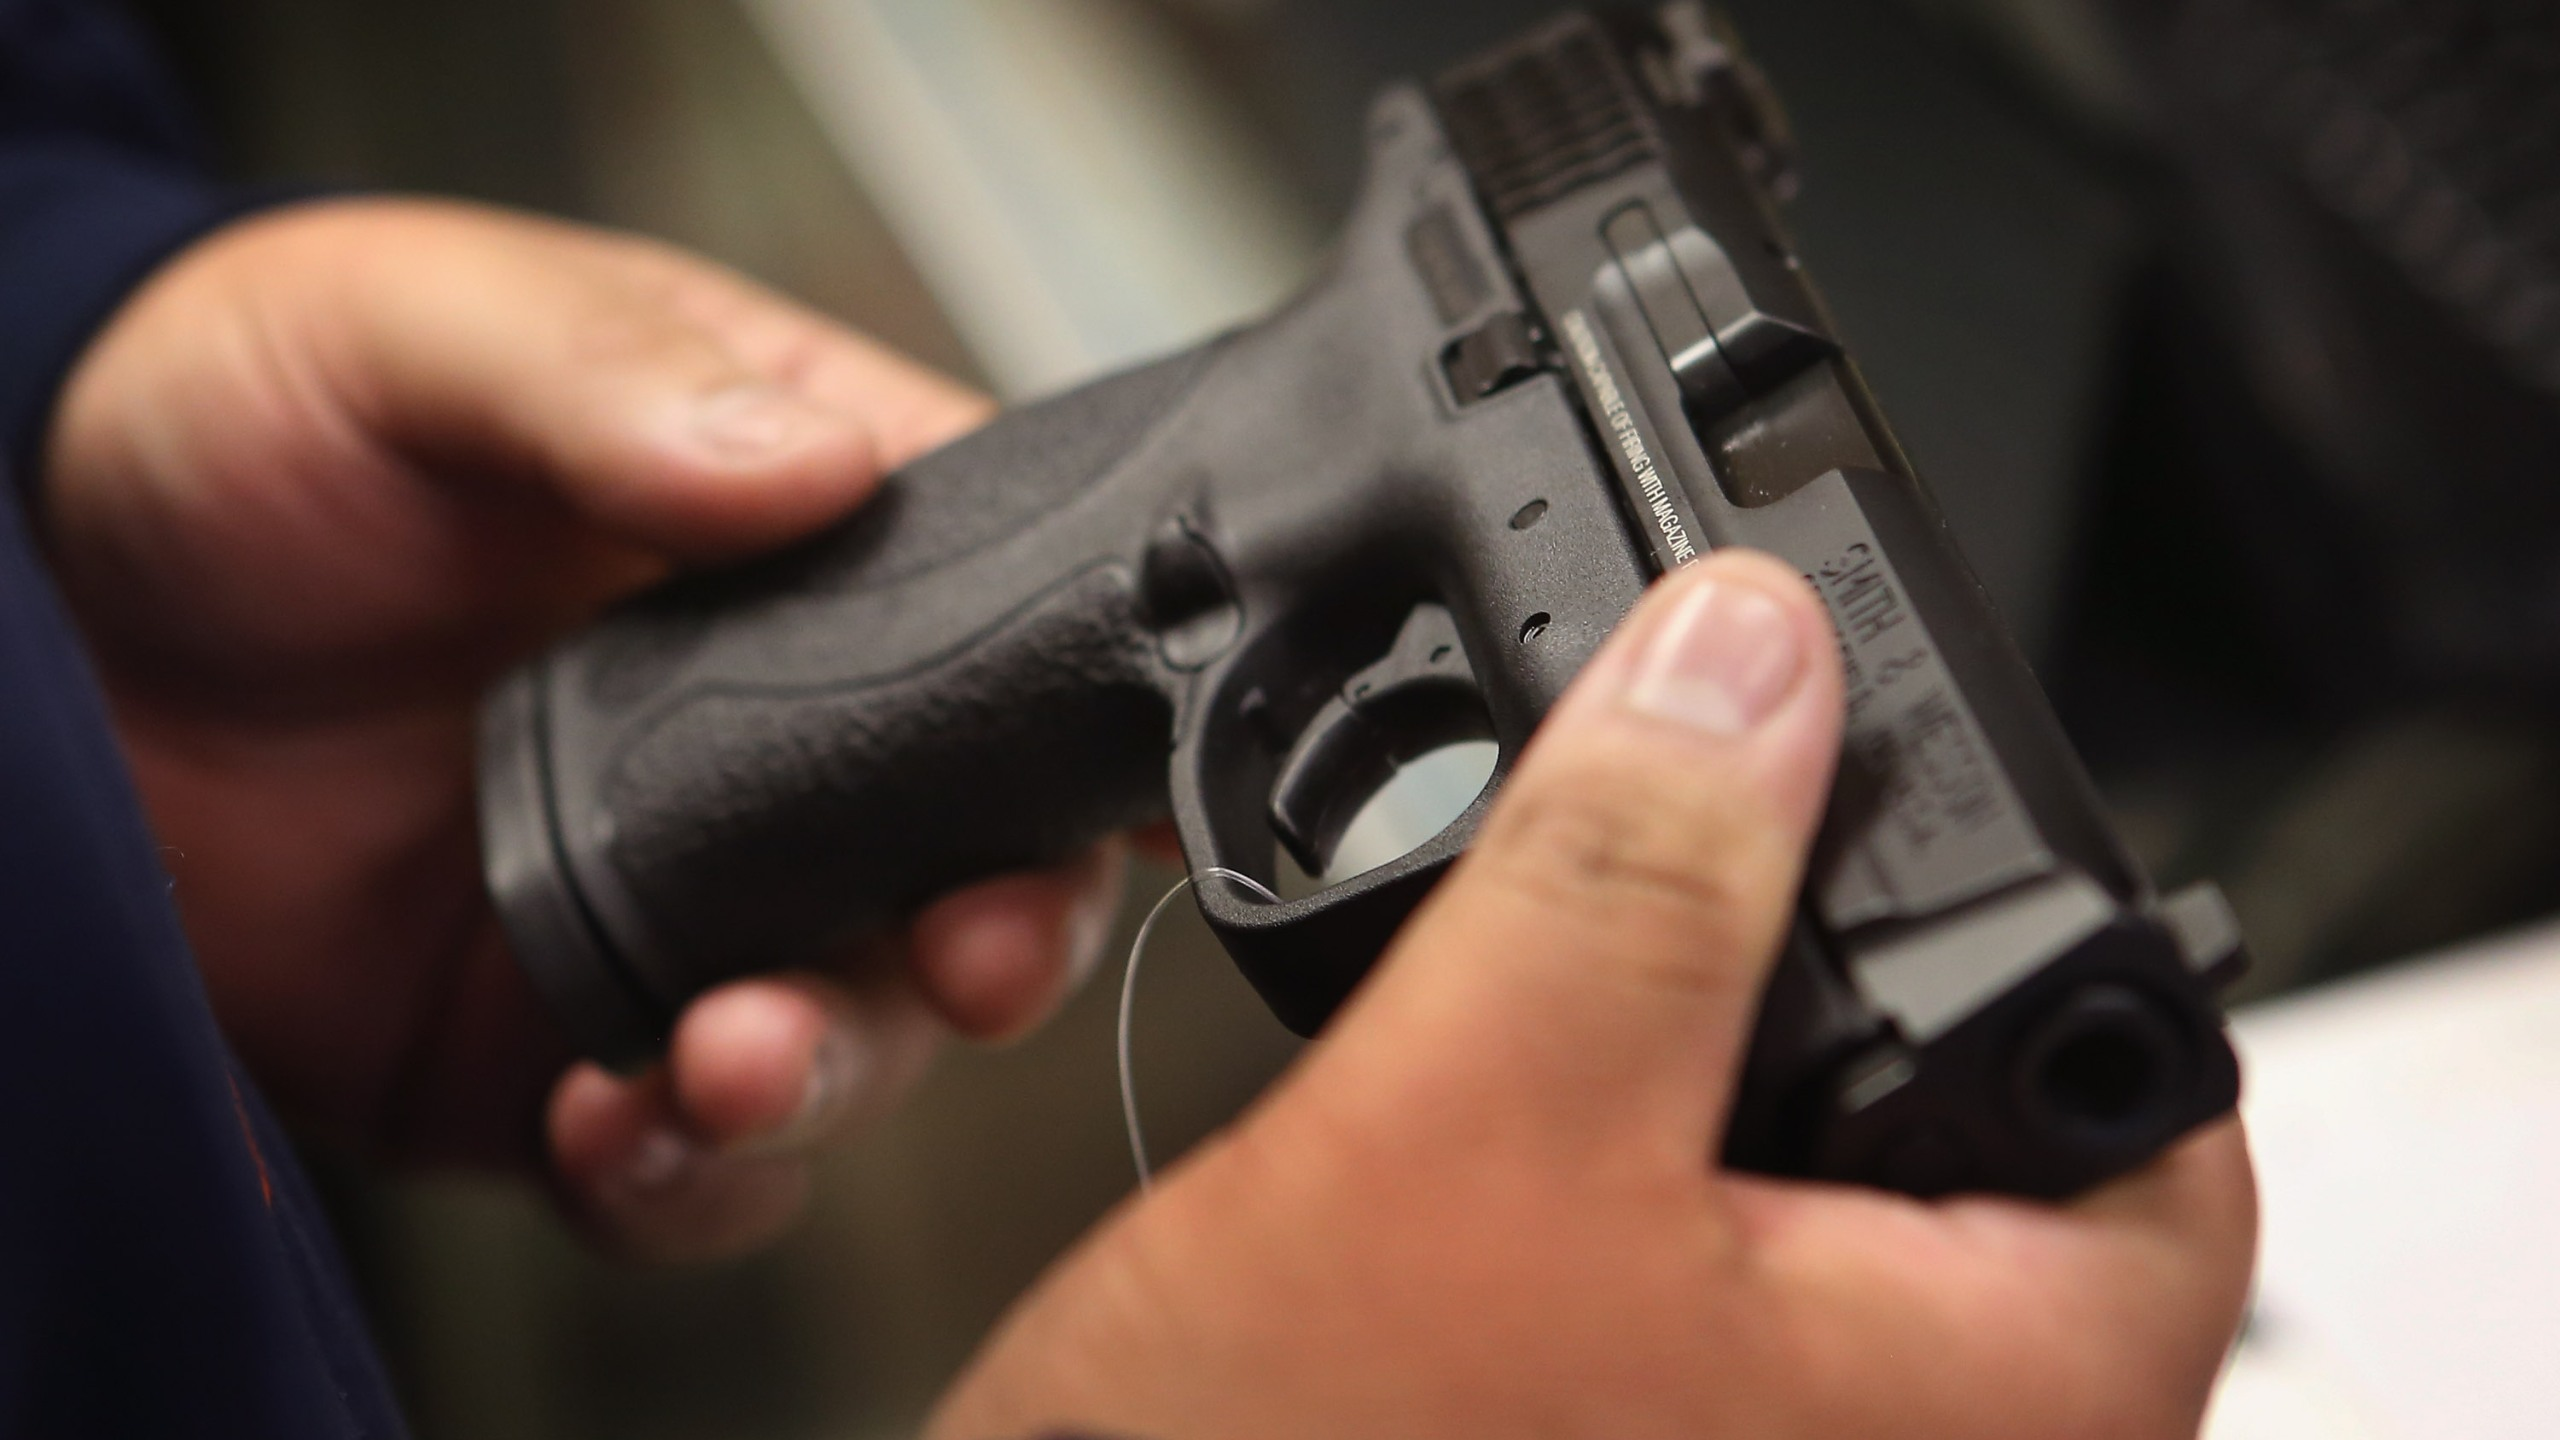 A person holds a pistol in this file photo. (Credit: Scott Olson/Getty Images)